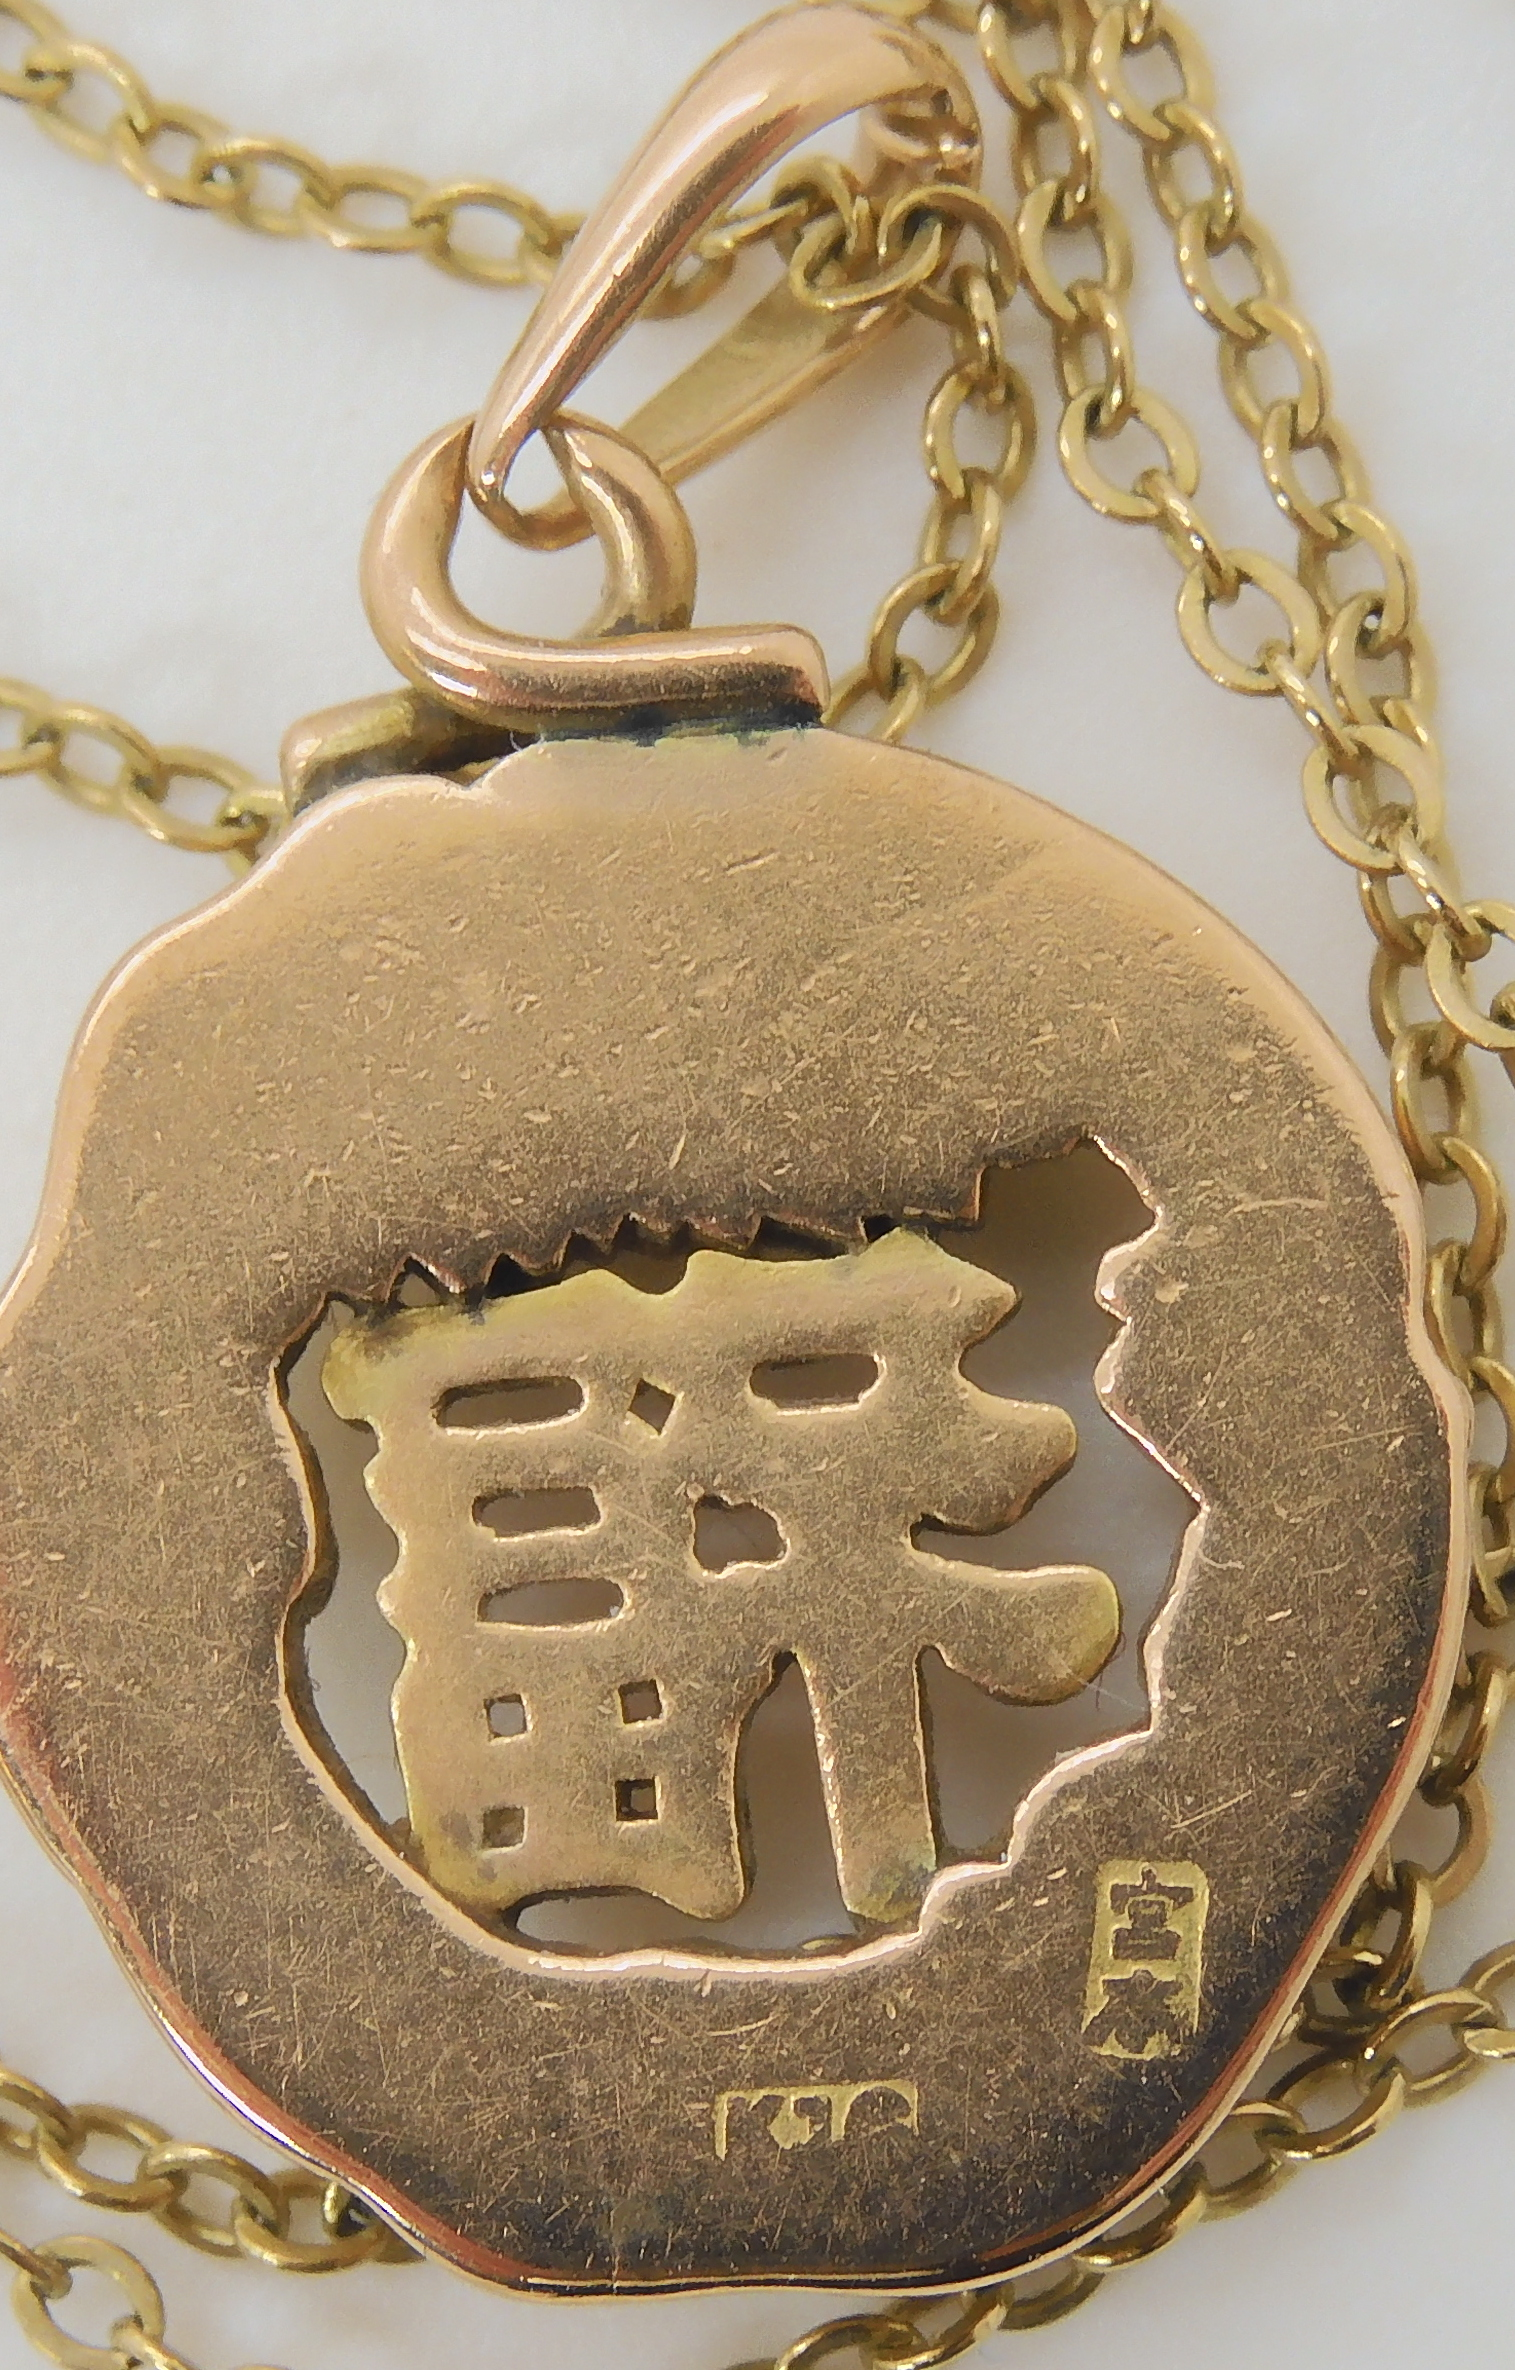 A CHINESE 16K GOLD DRAGON PENDANT the dragon coiled around a Chinese symbol, Chinese stamps to the - Image 3 of 3